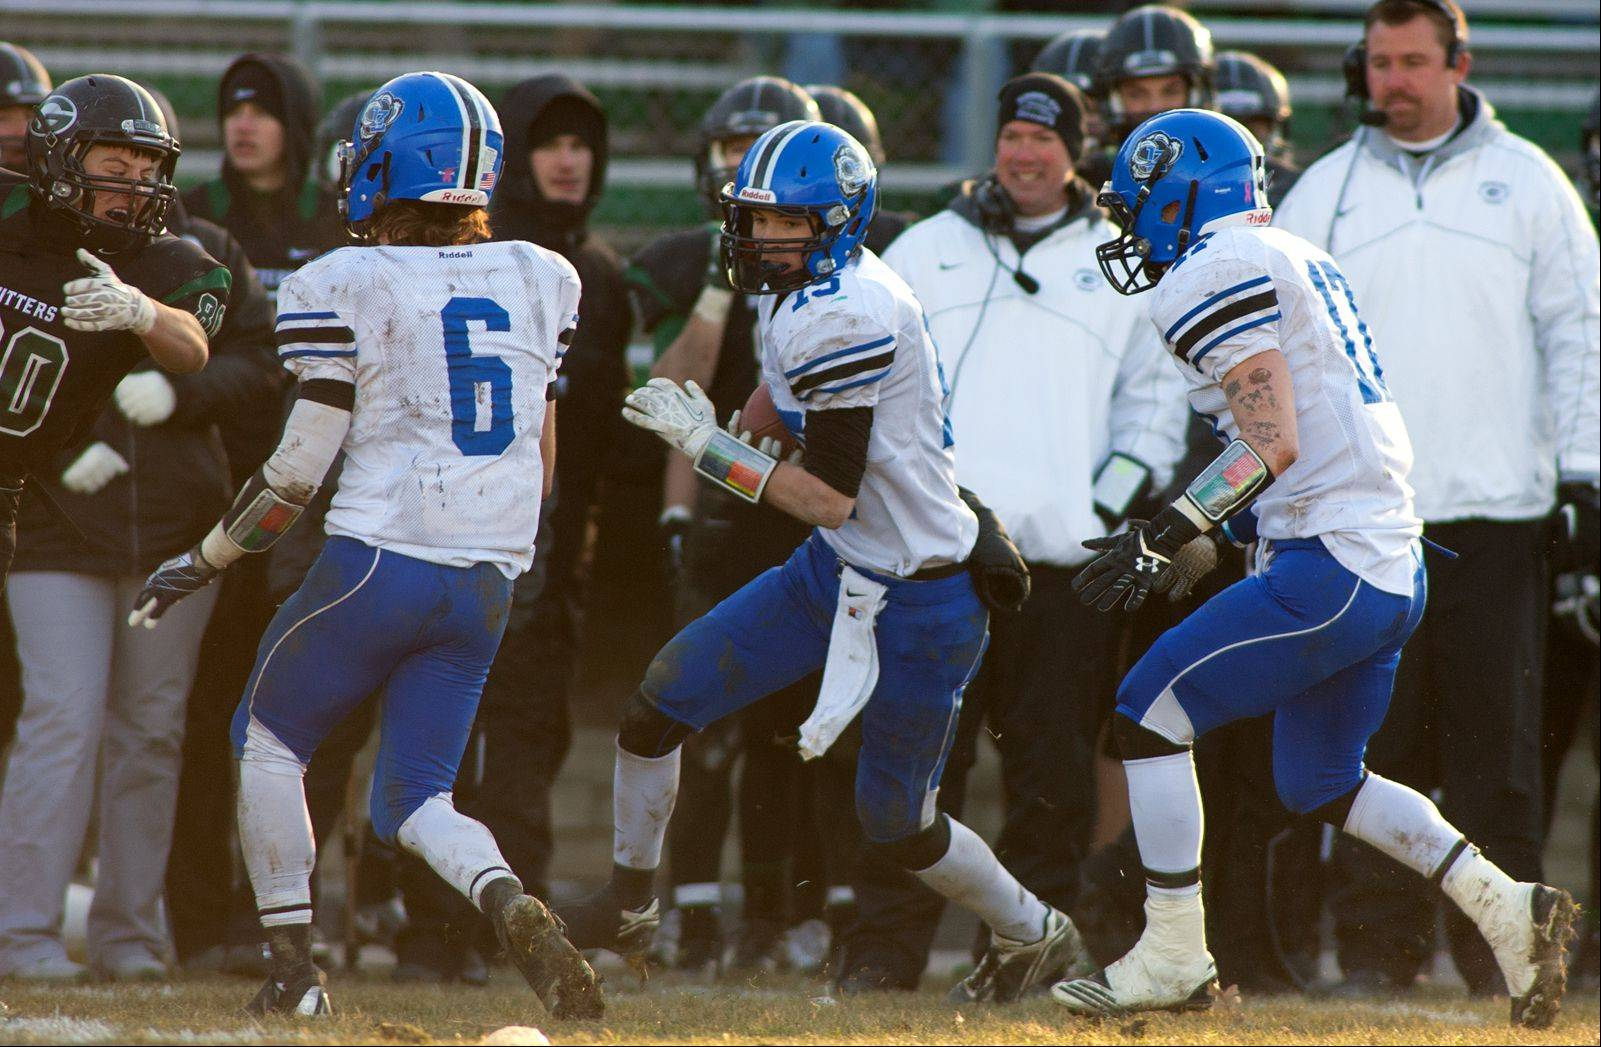 Lake Zurich's Trevor Staley, center, looks for yardage after his fourth quarter interception set up the final Bears touchdown over Glenbard West.